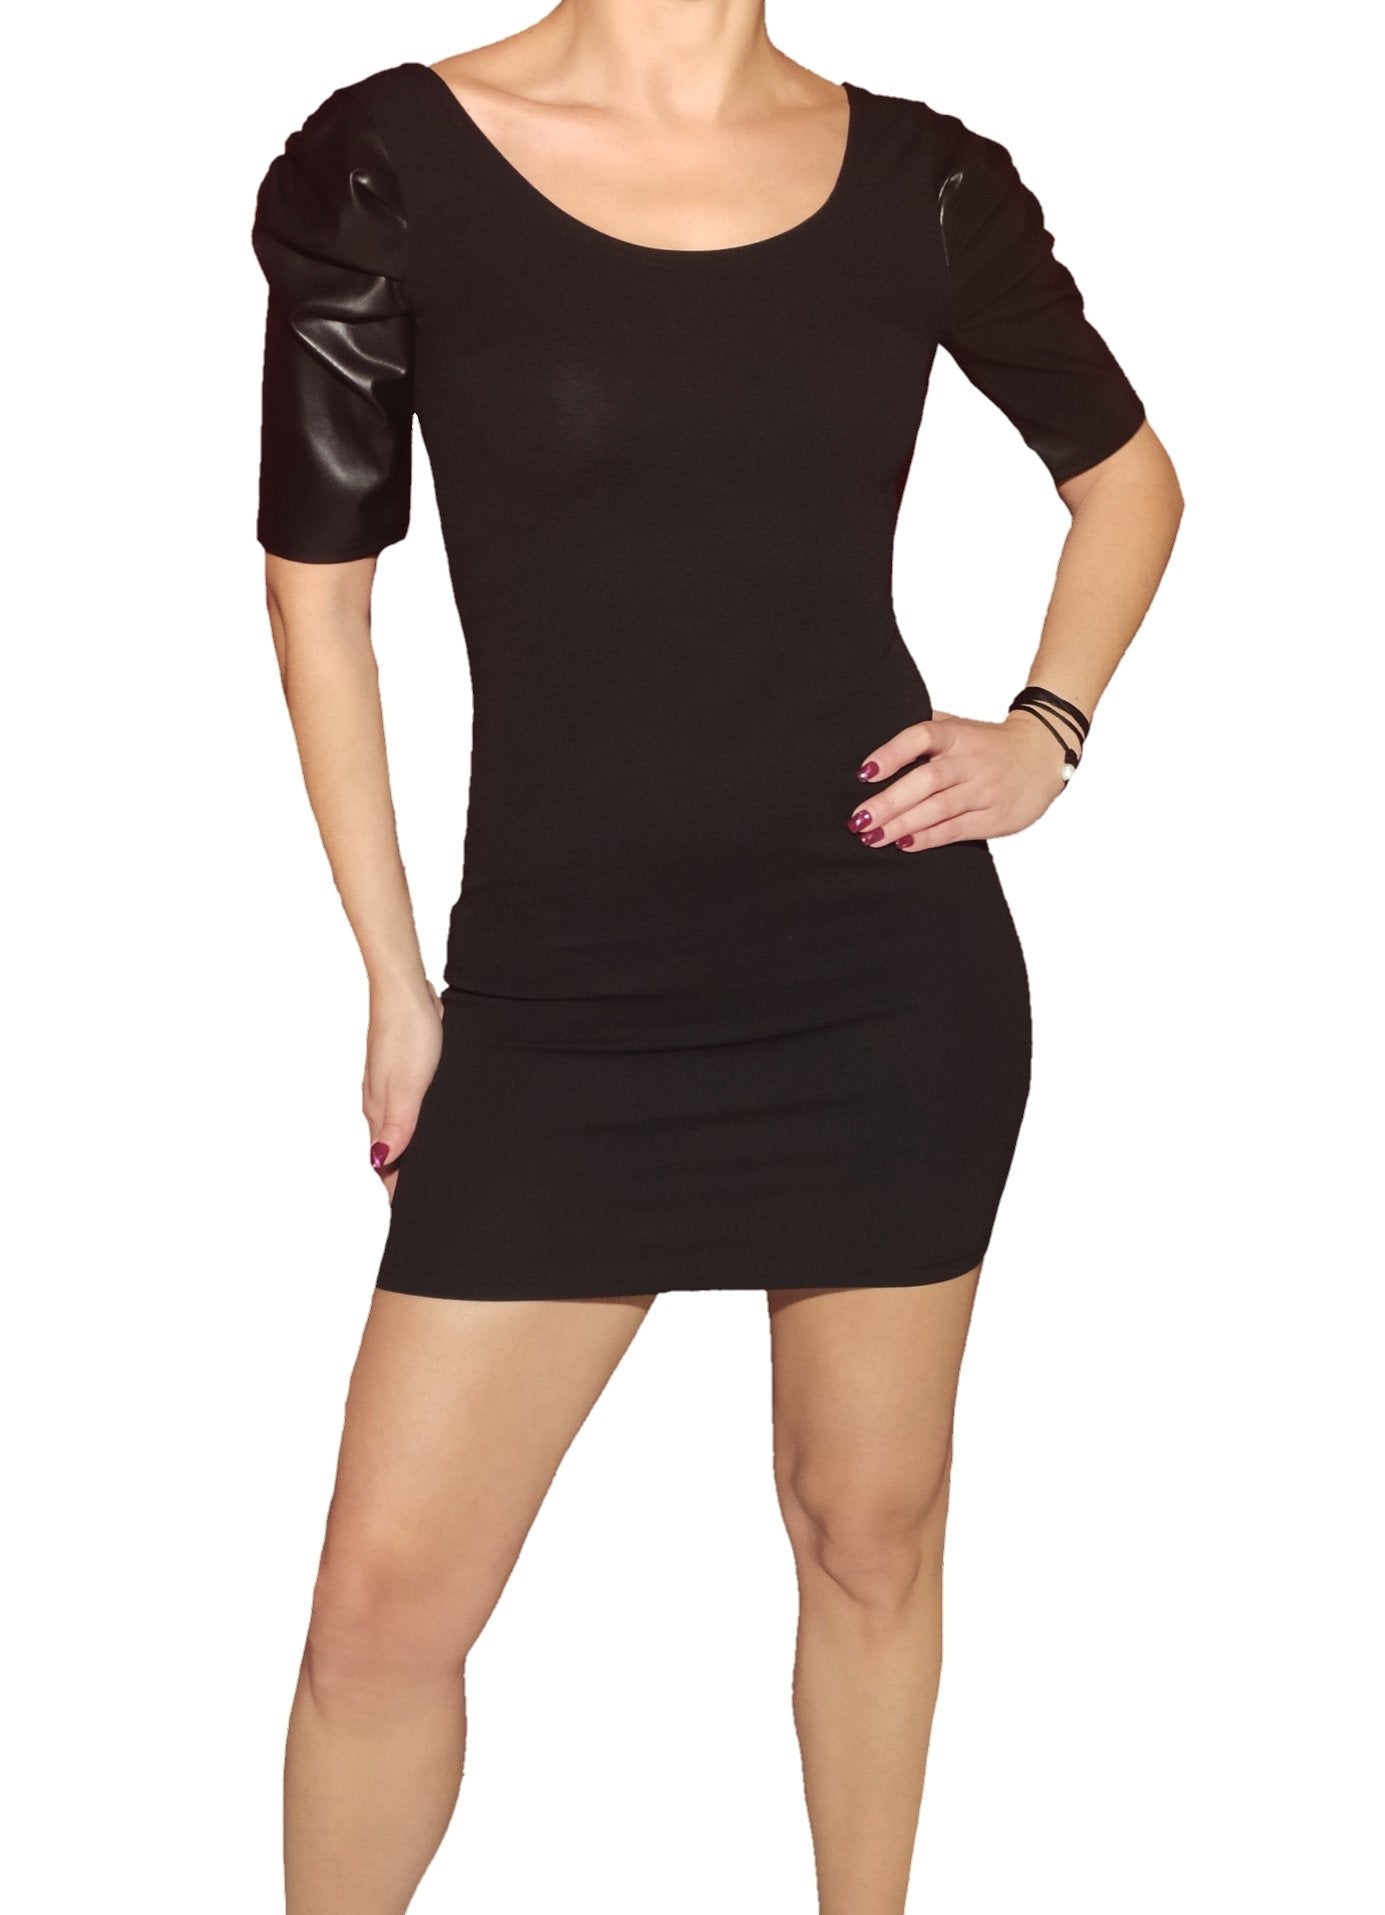 a-girl-wears-a-black-mini-dress-with-leatherin-sleeves-front-side